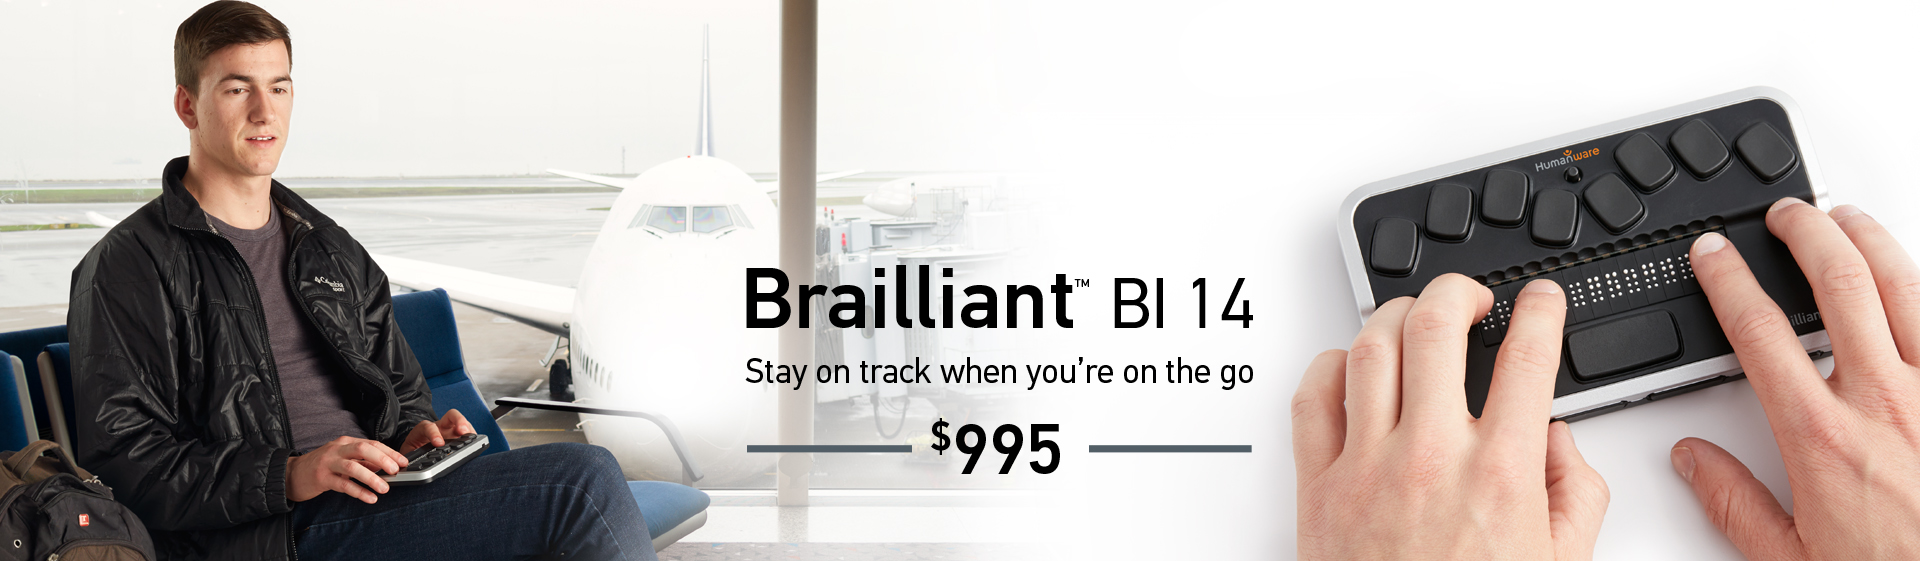 Brailliant BI 14 - Stay on track when you're on the go - $995